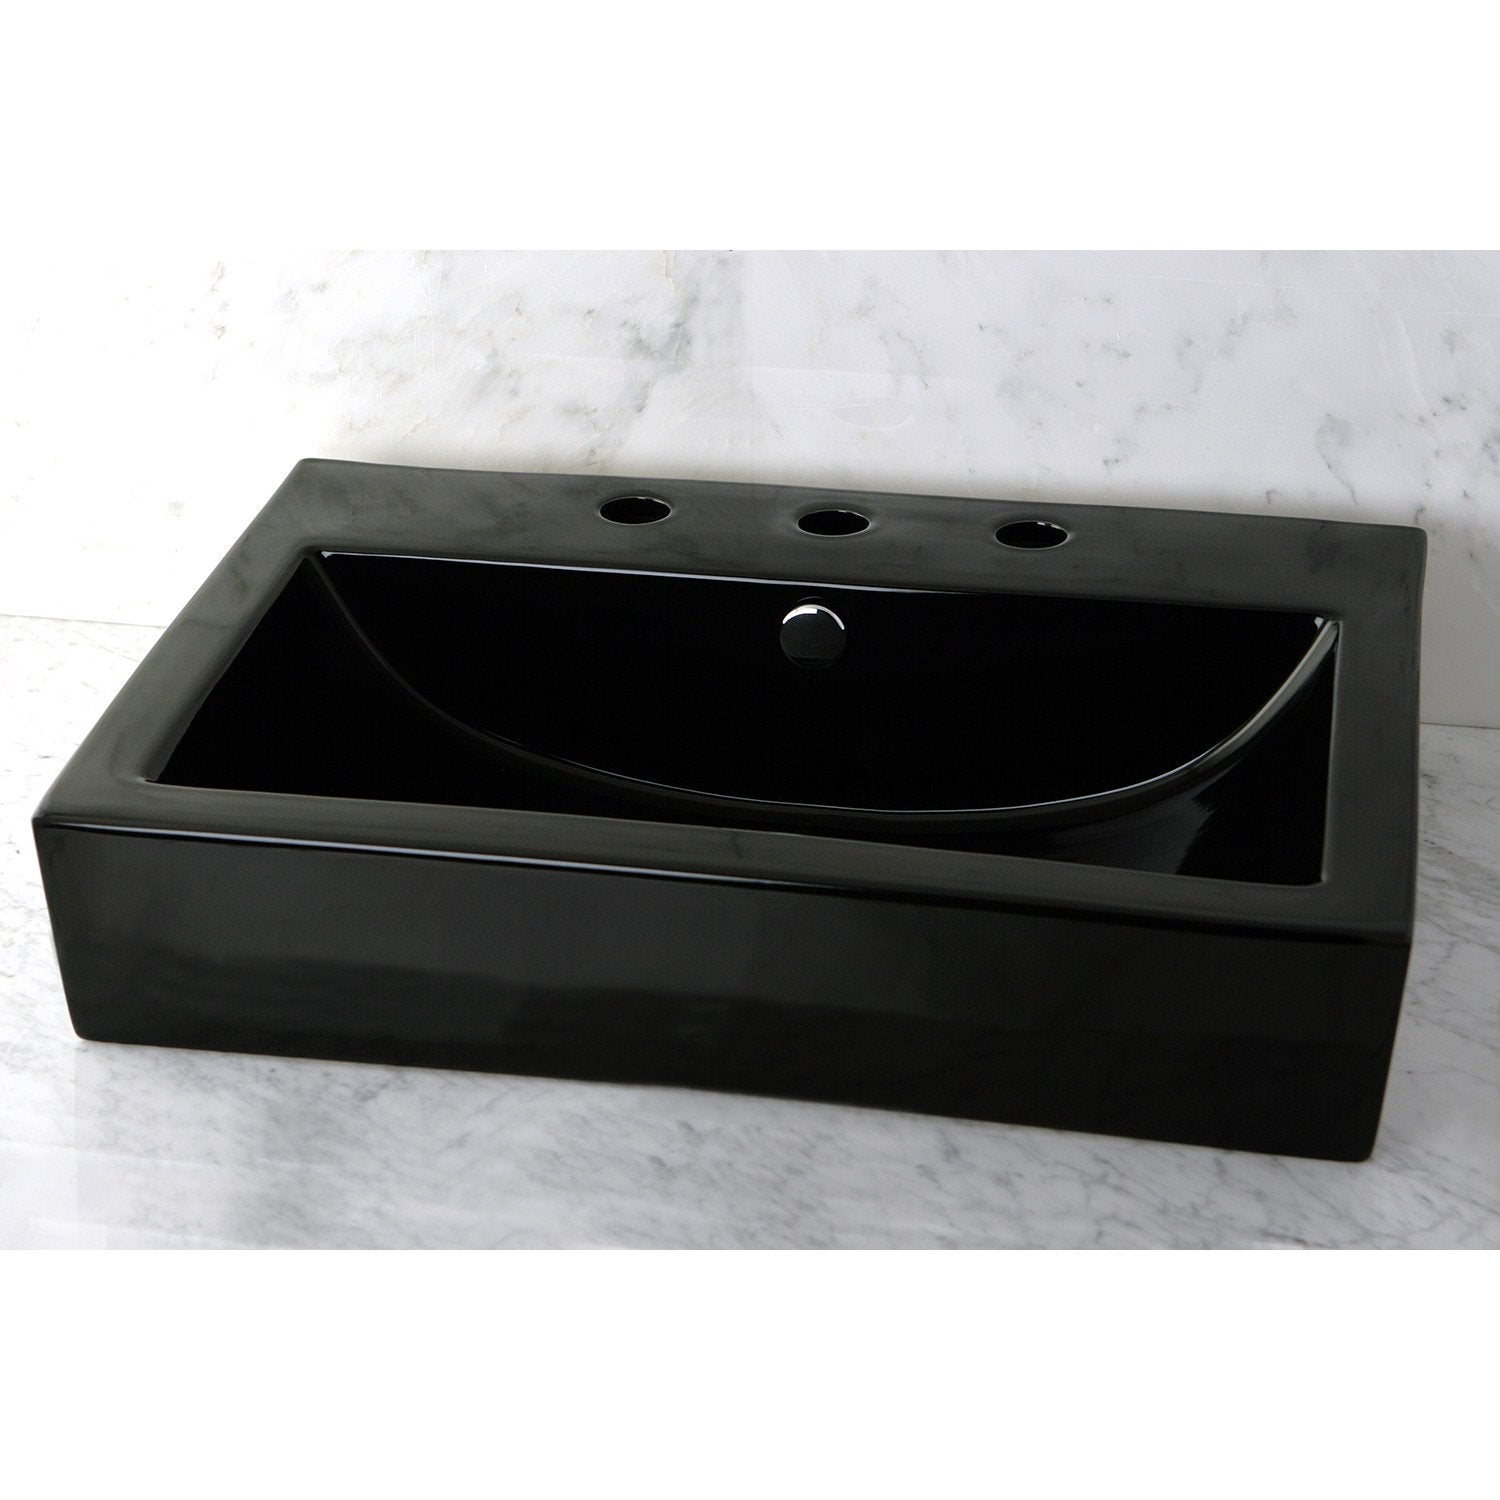 Black China Vessel Bathroom Sink w/Overflow Hole & 3 Faucet Holes ...